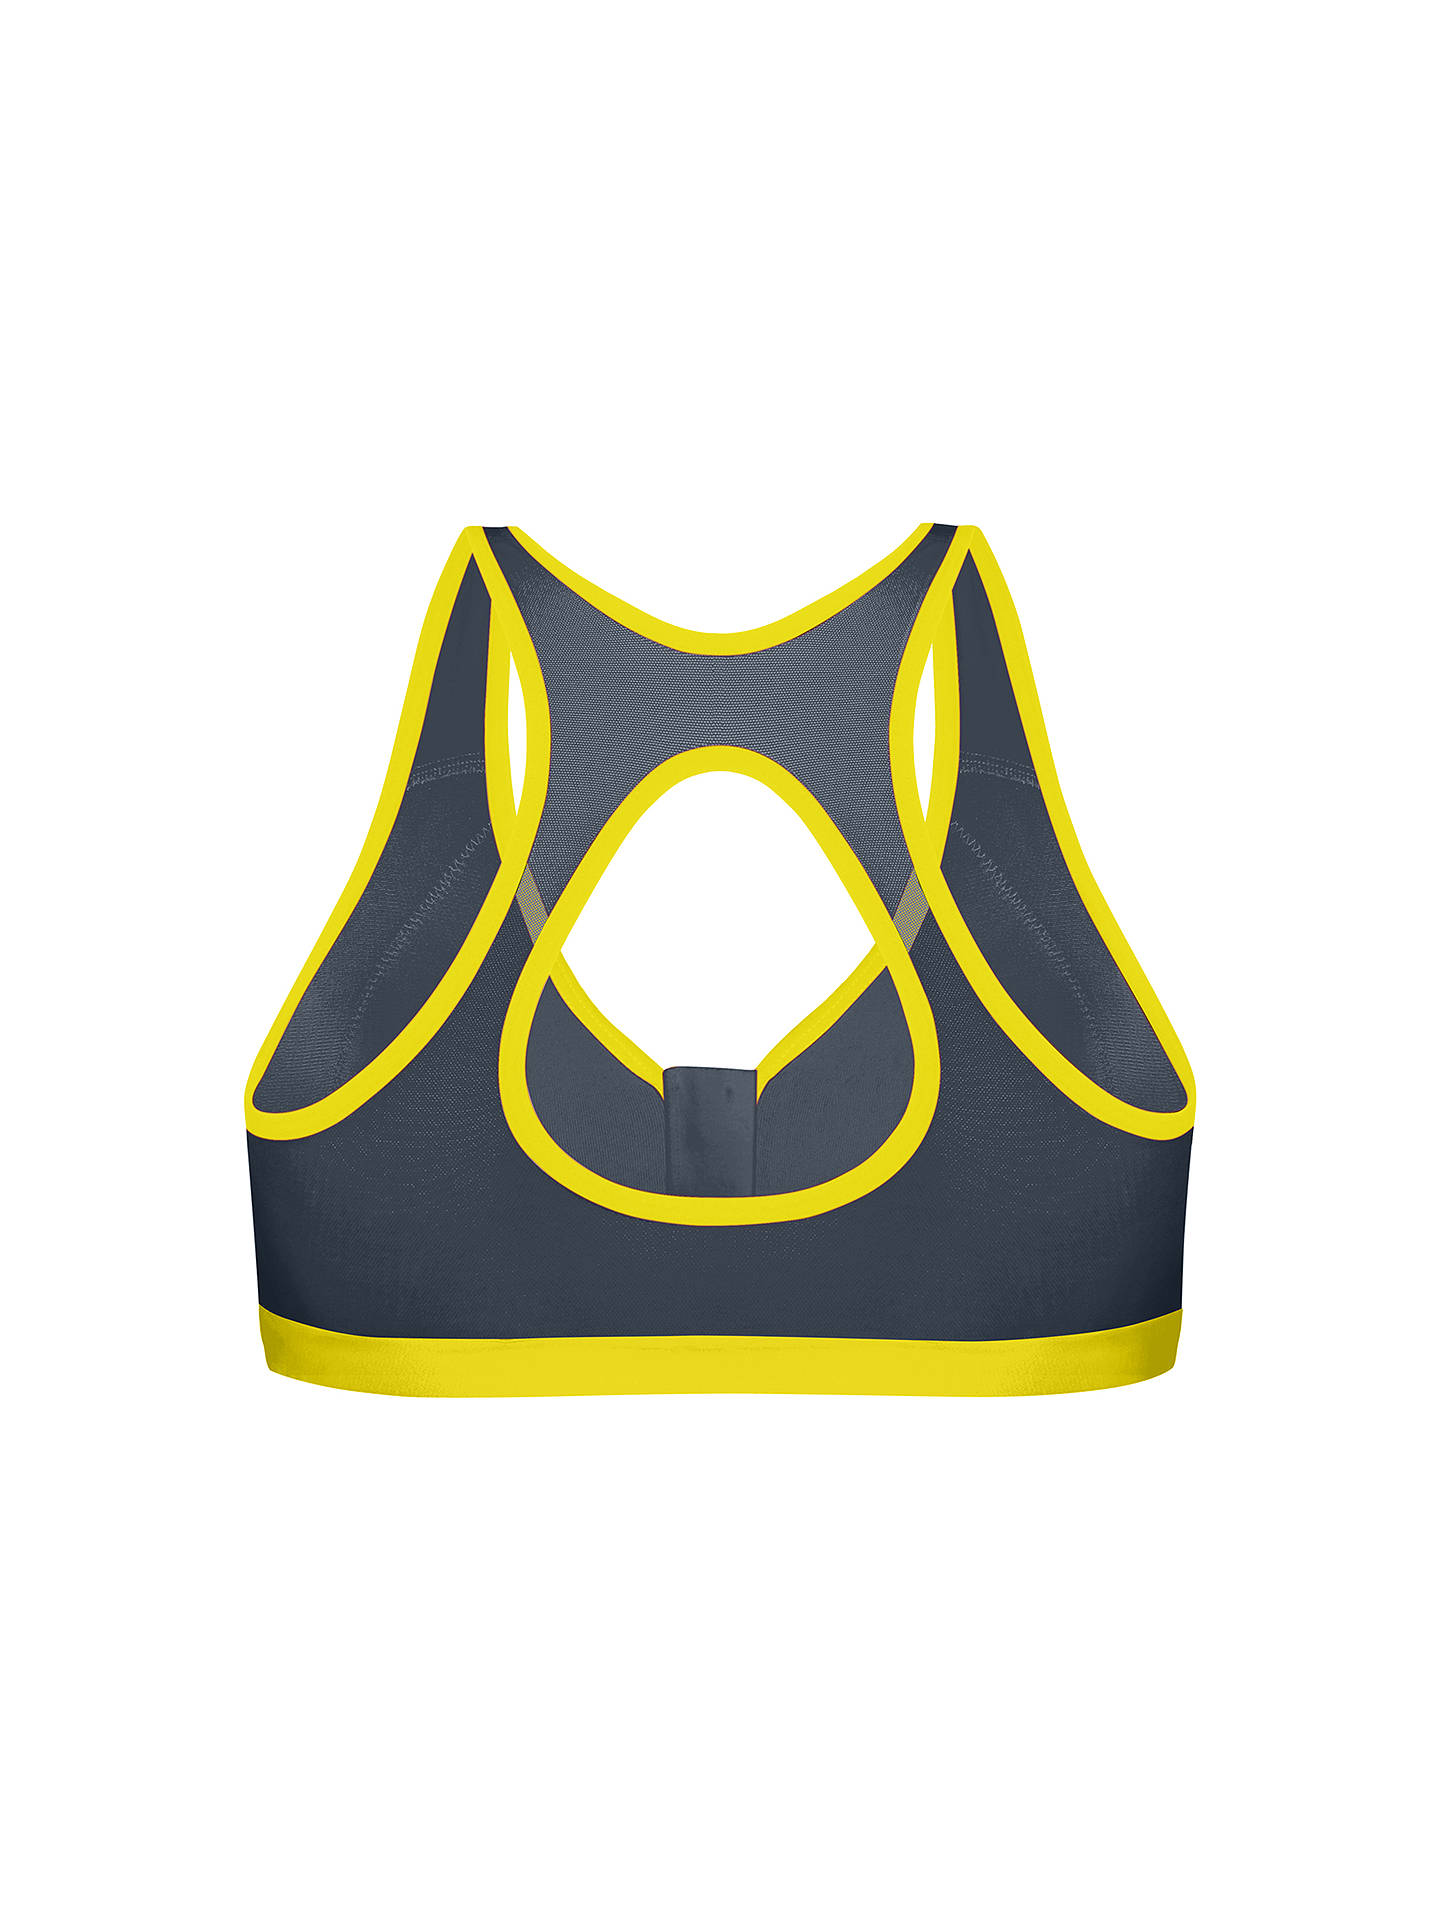 ce5489d0a73 ... Buy Shock Absorber Active Zipped Plunge Non-Wired Sports Bra